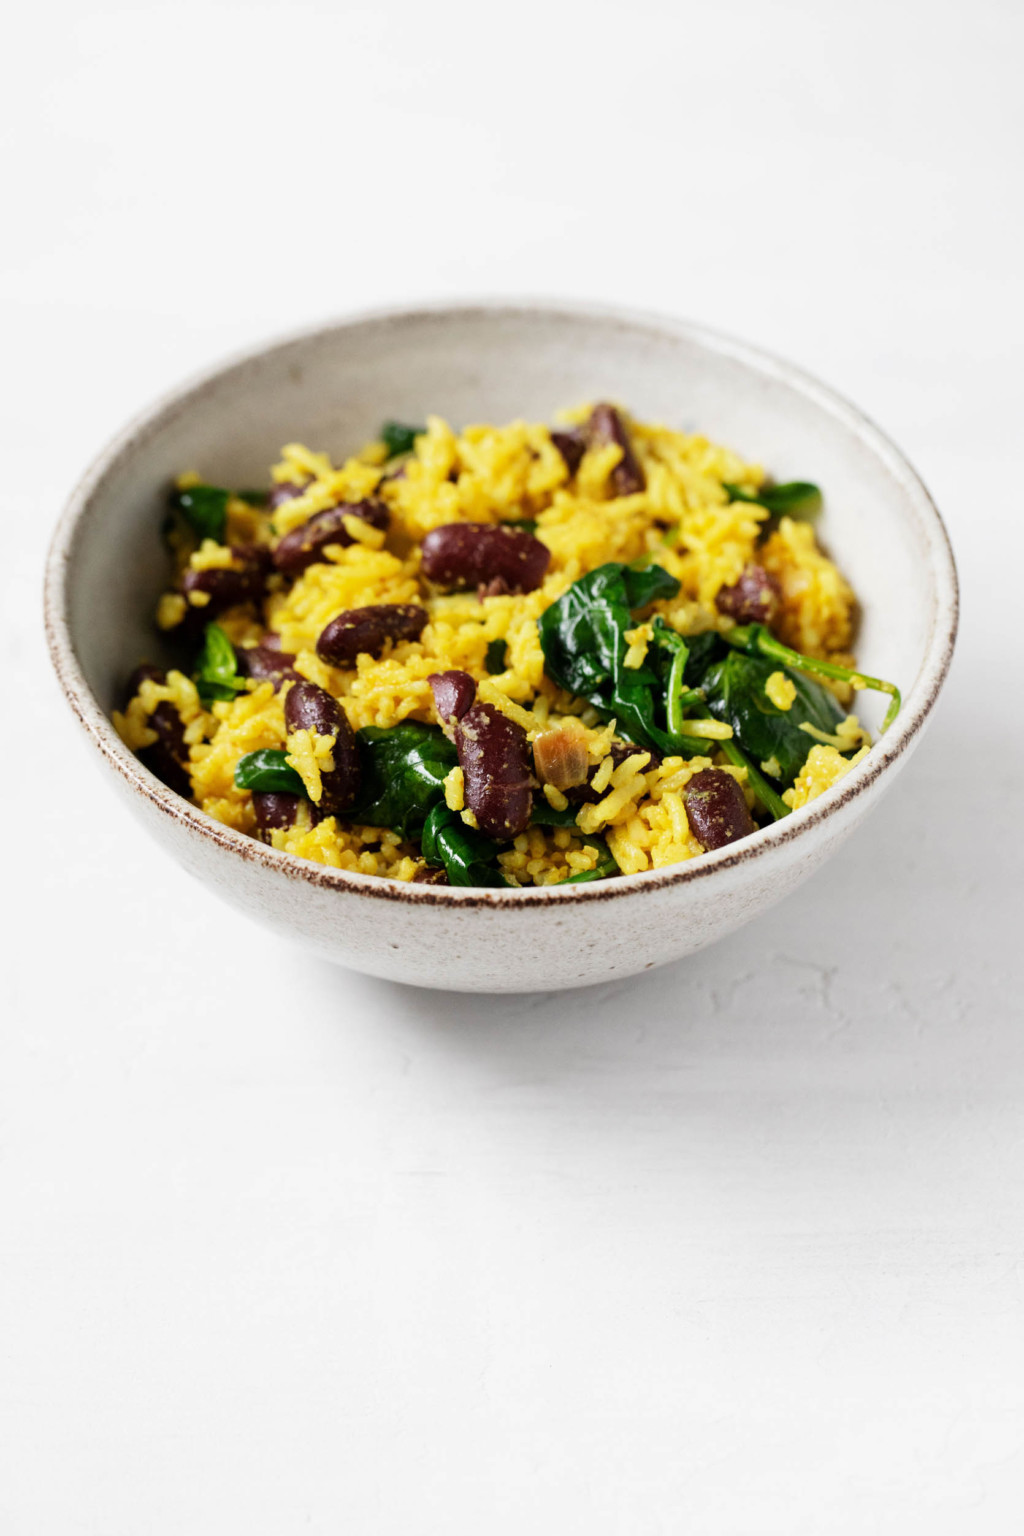 A small, ceramic bowl holds a plant-based meal of kidney beans, whole grains, and spinach.